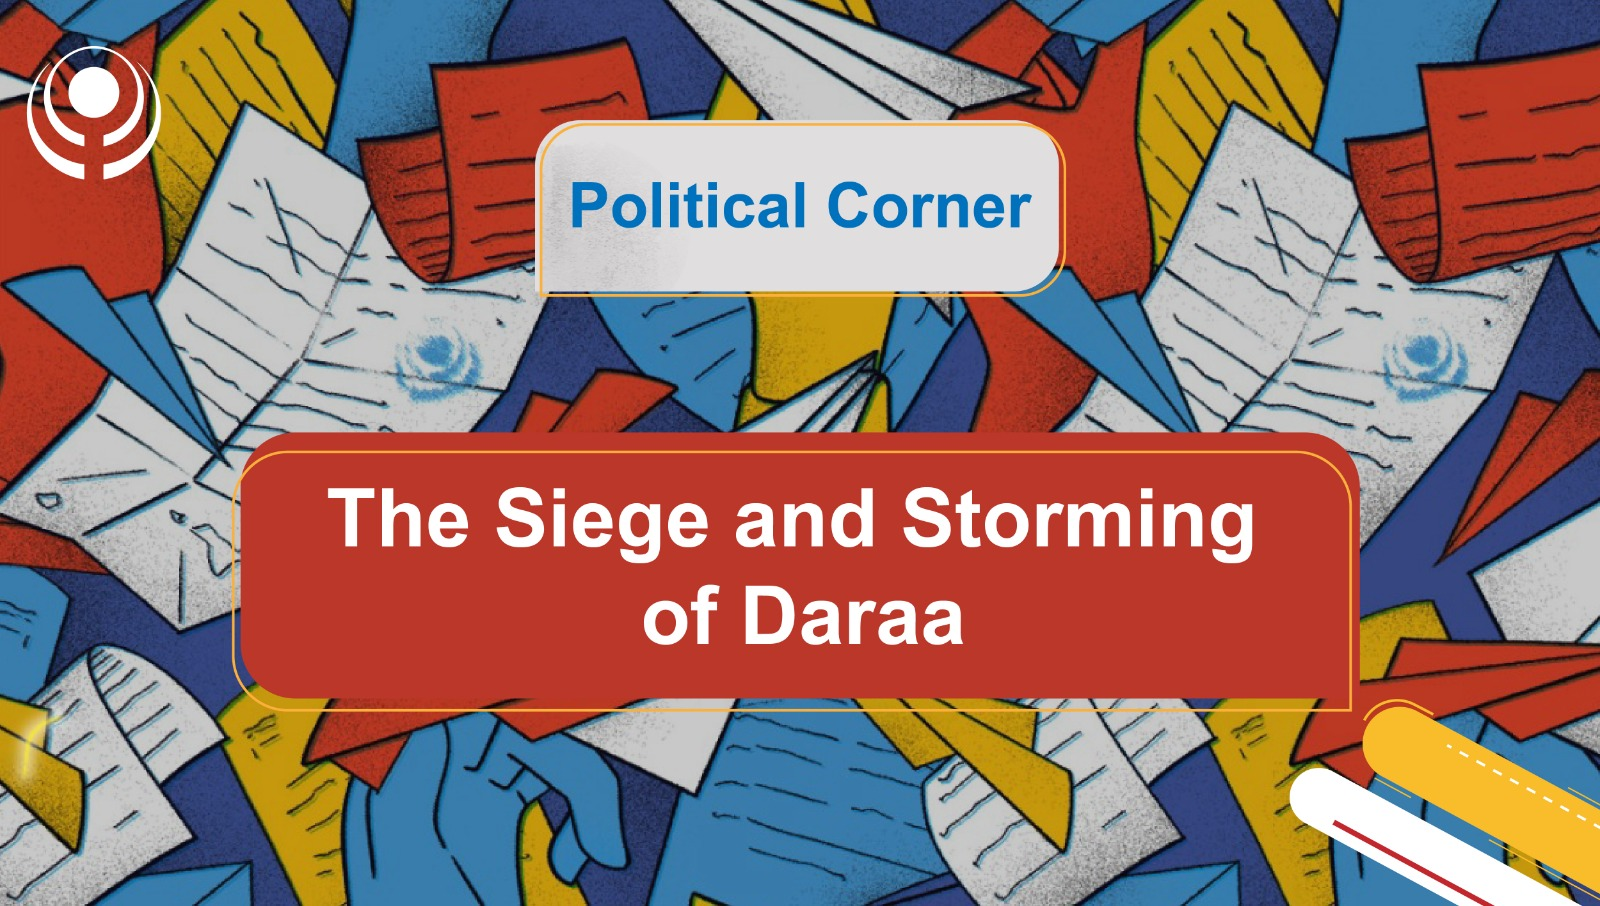 The Siege and Storming of Daraa